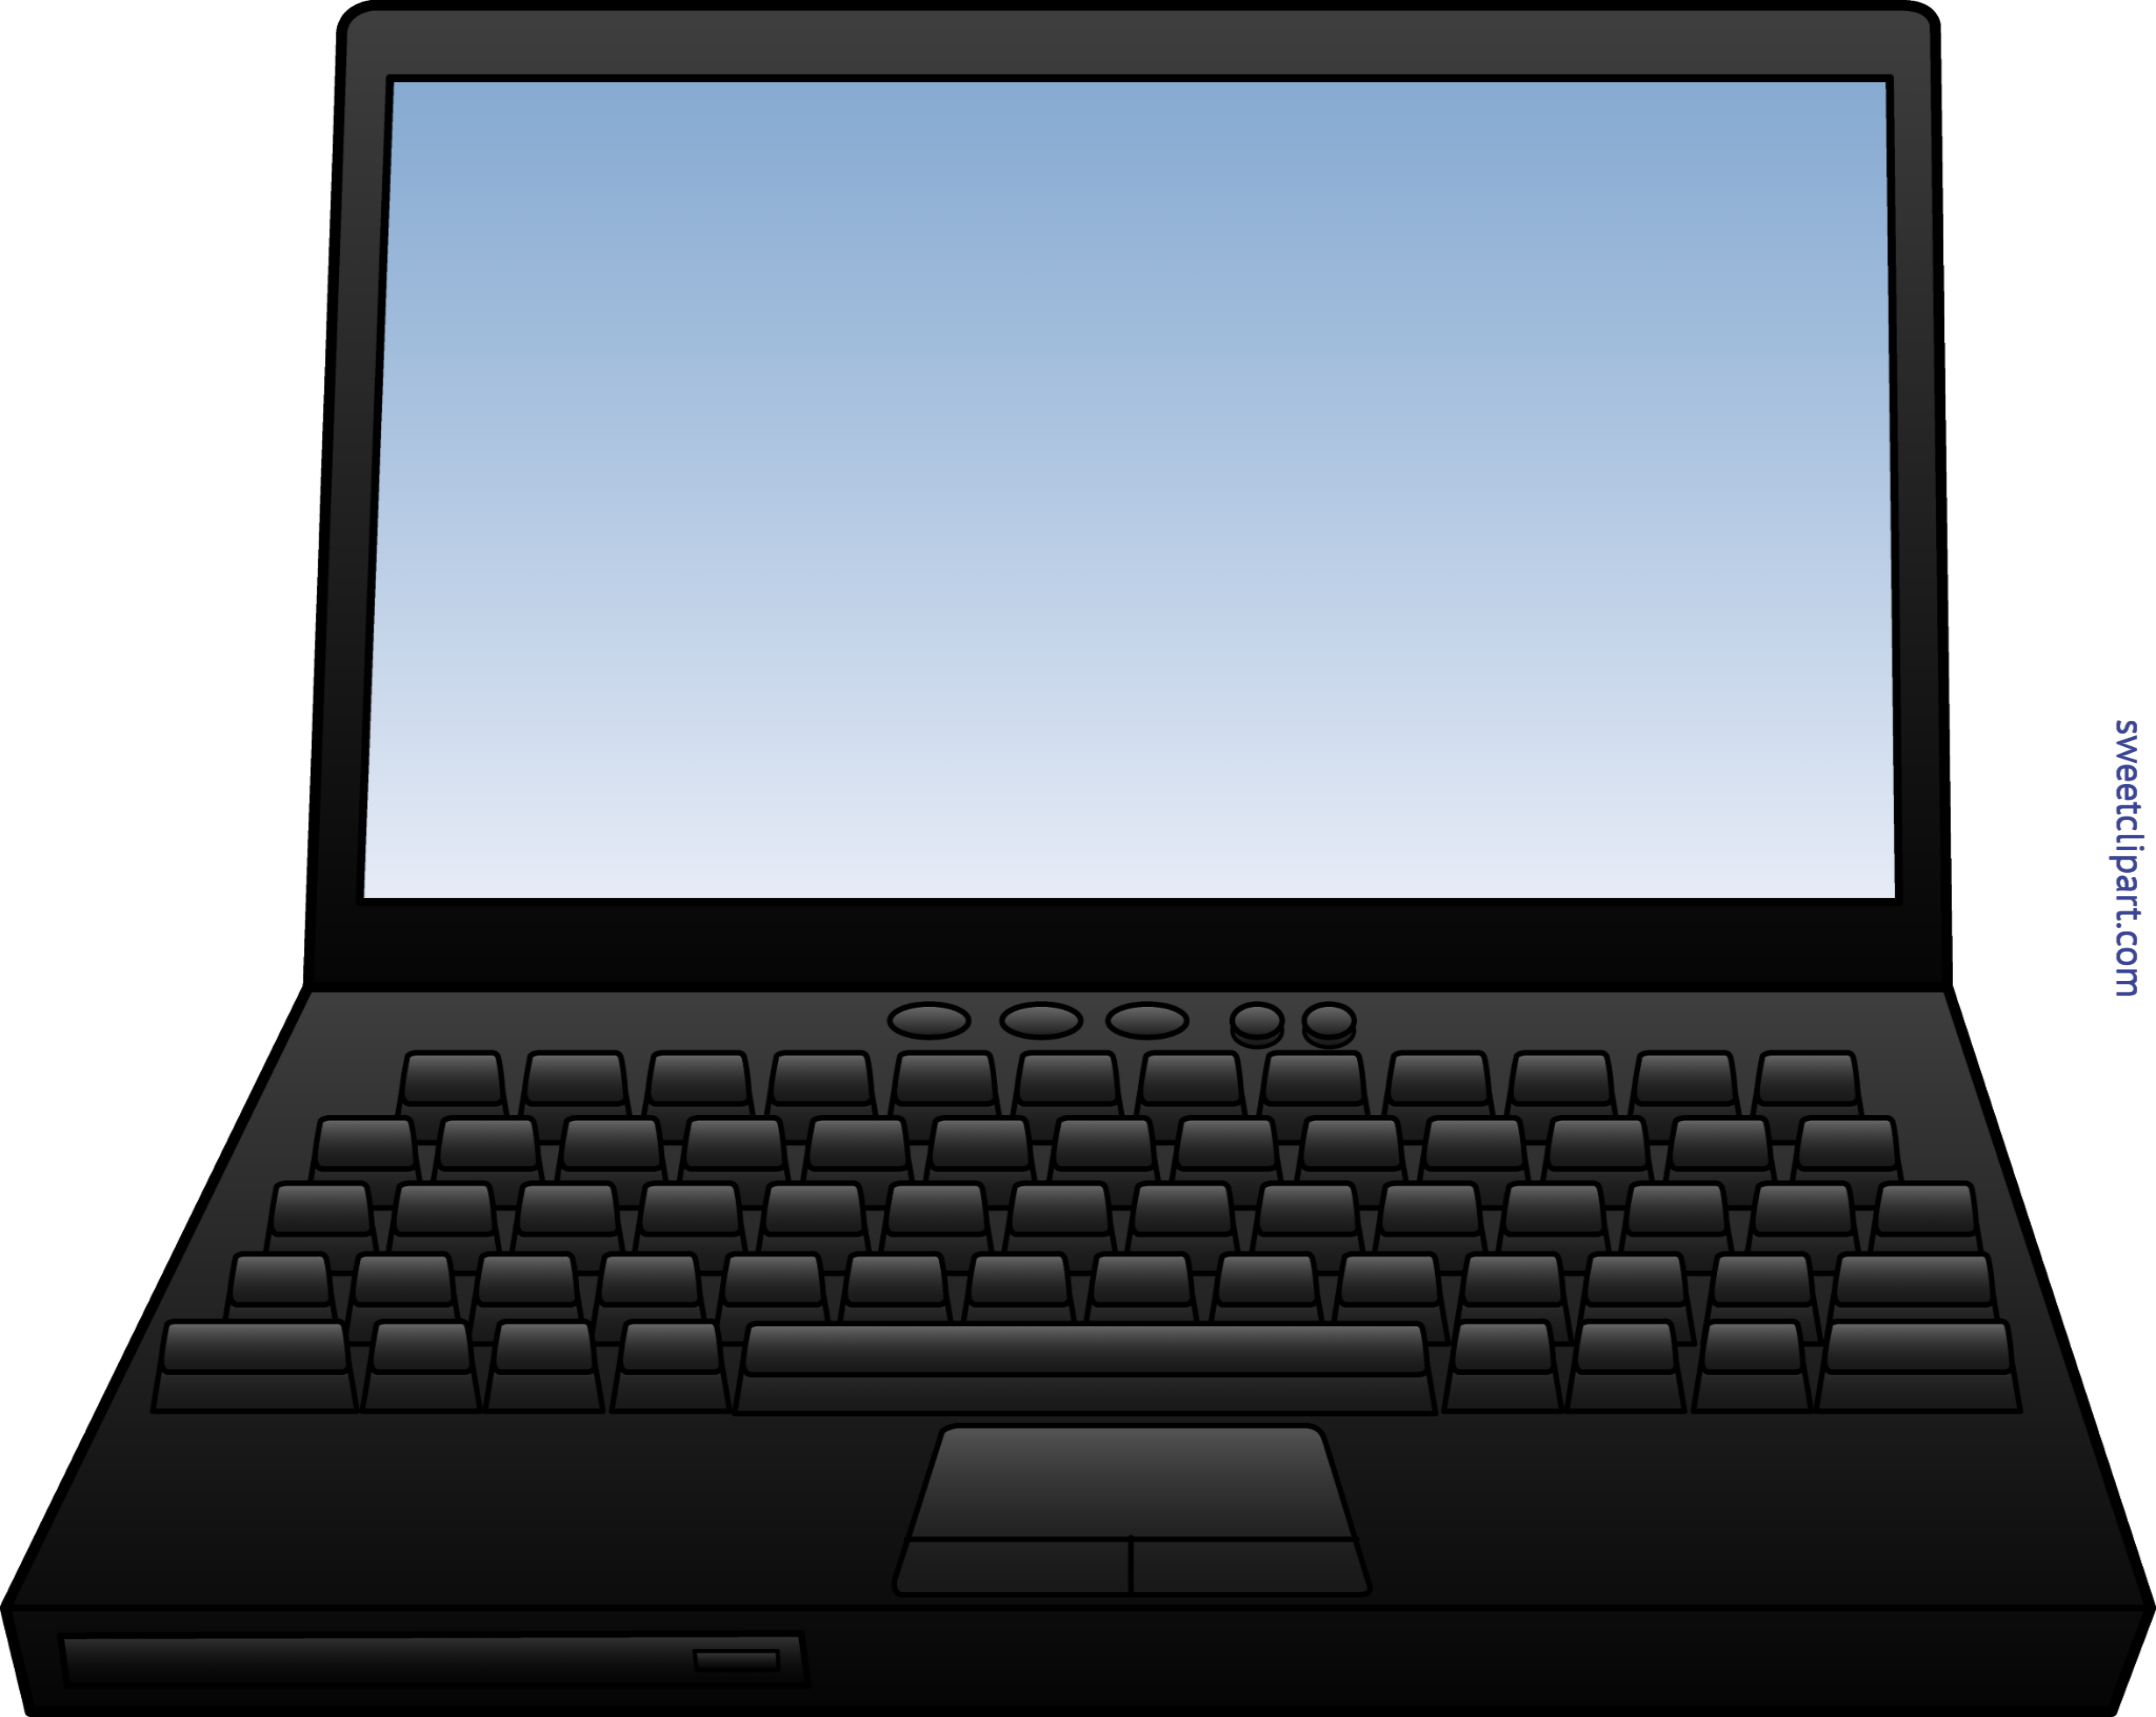 Working clipart laptop. Computer clip art sweet